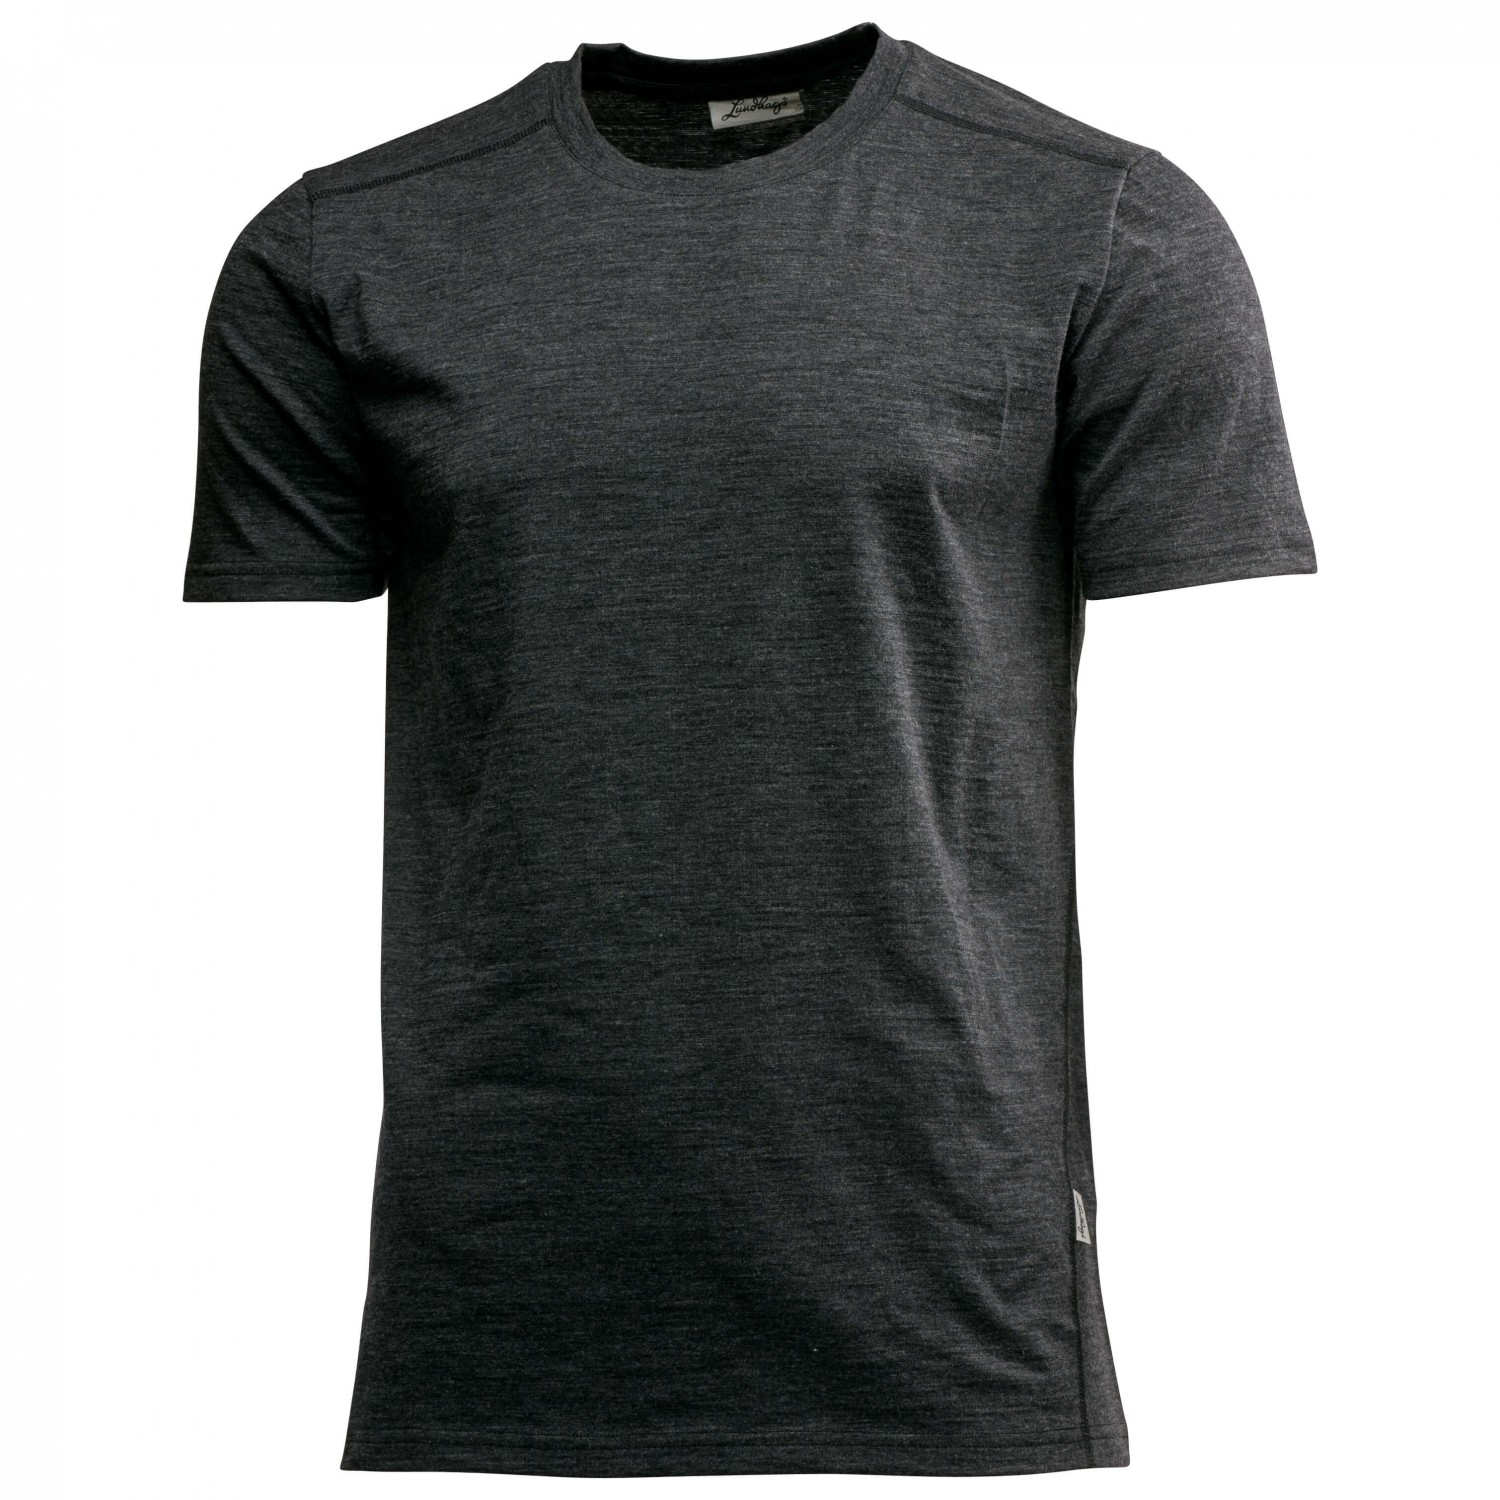 lundhags merino light tee t shirt herren. Black Bedroom Furniture Sets. Home Design Ideas